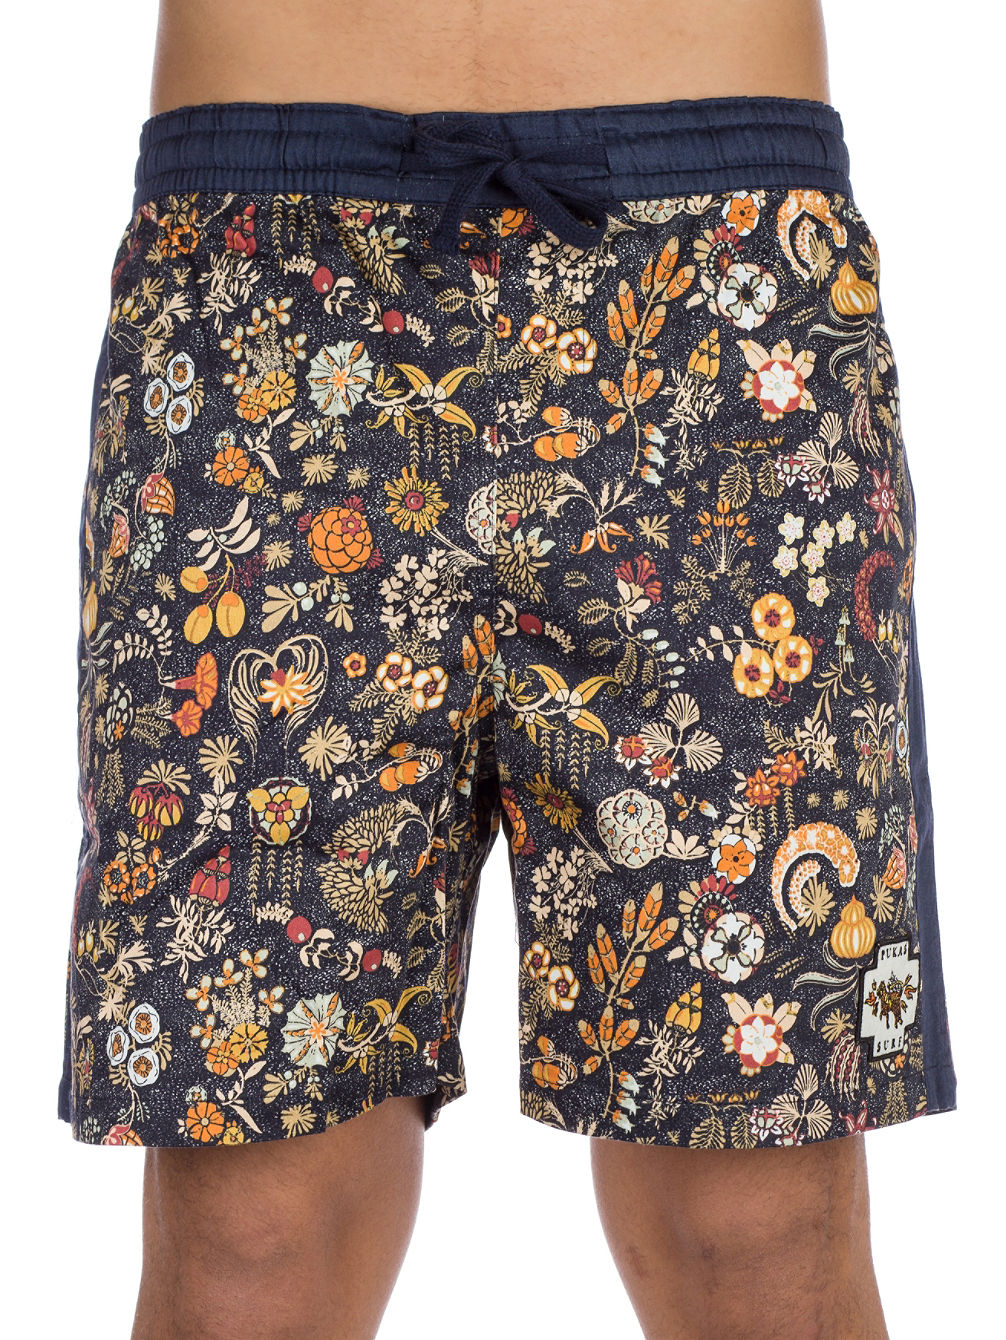 Flower Power Boardshorts